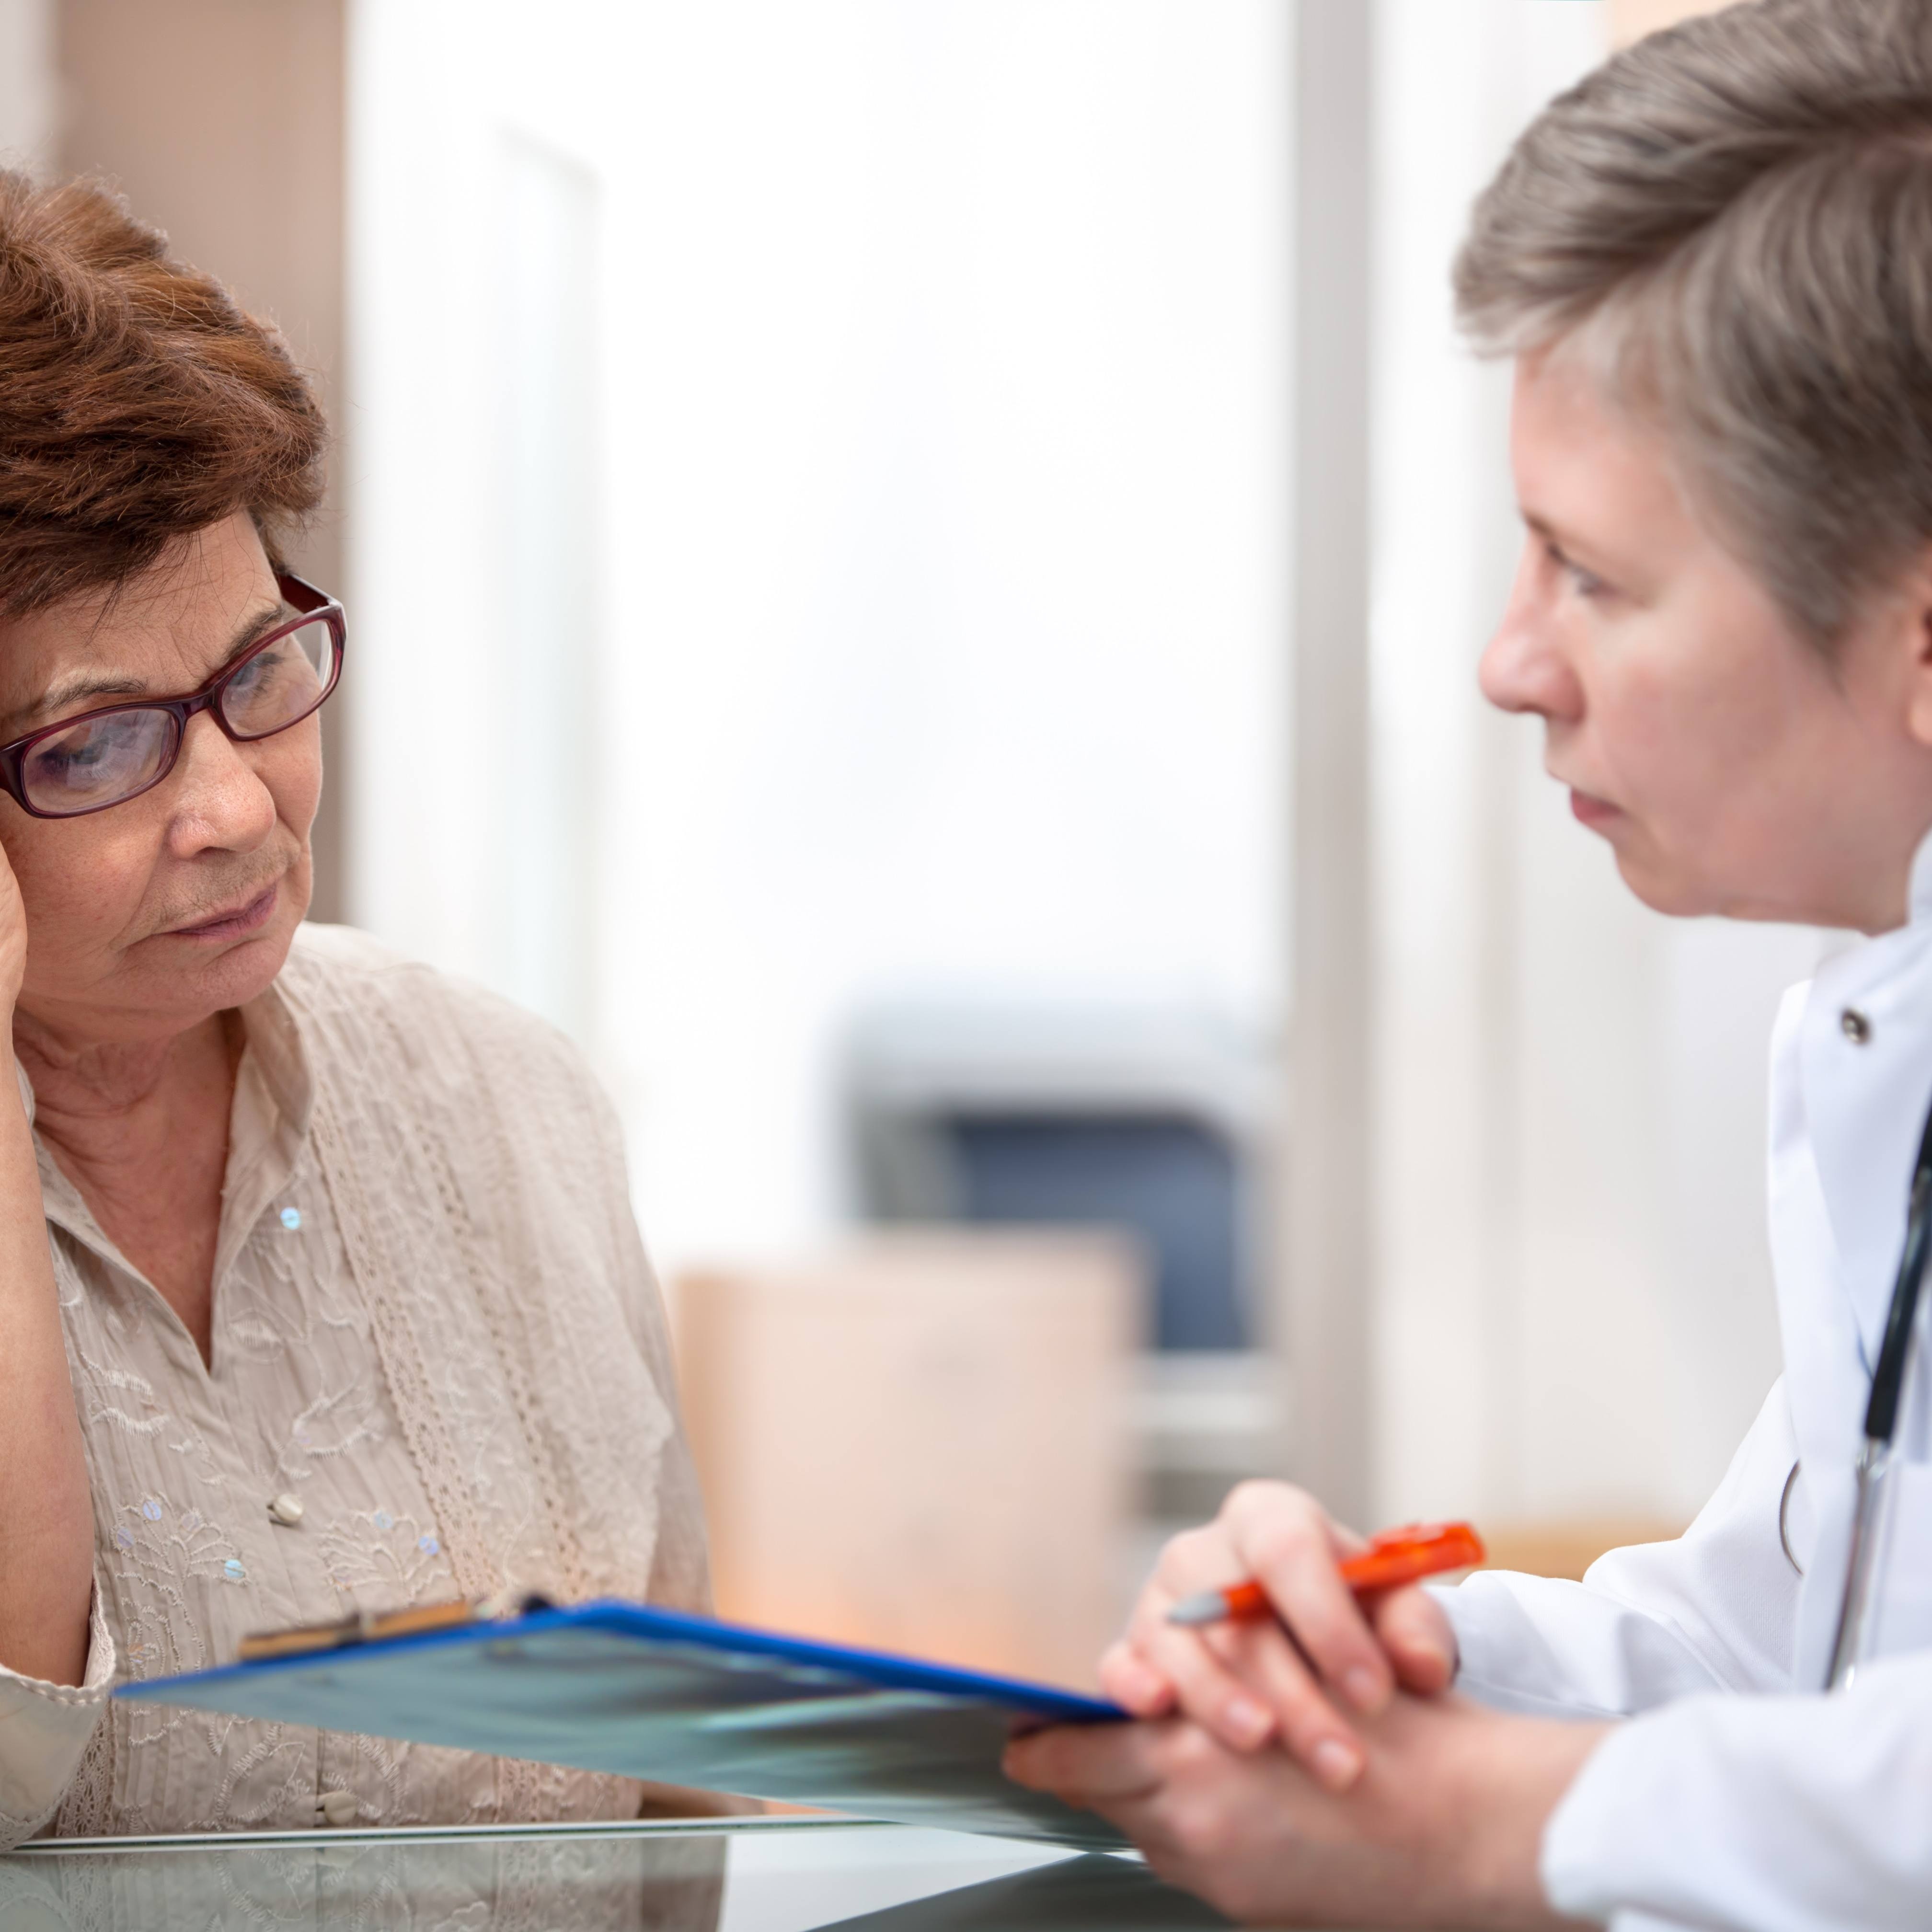 Female patient tells the doctor about her health complaint